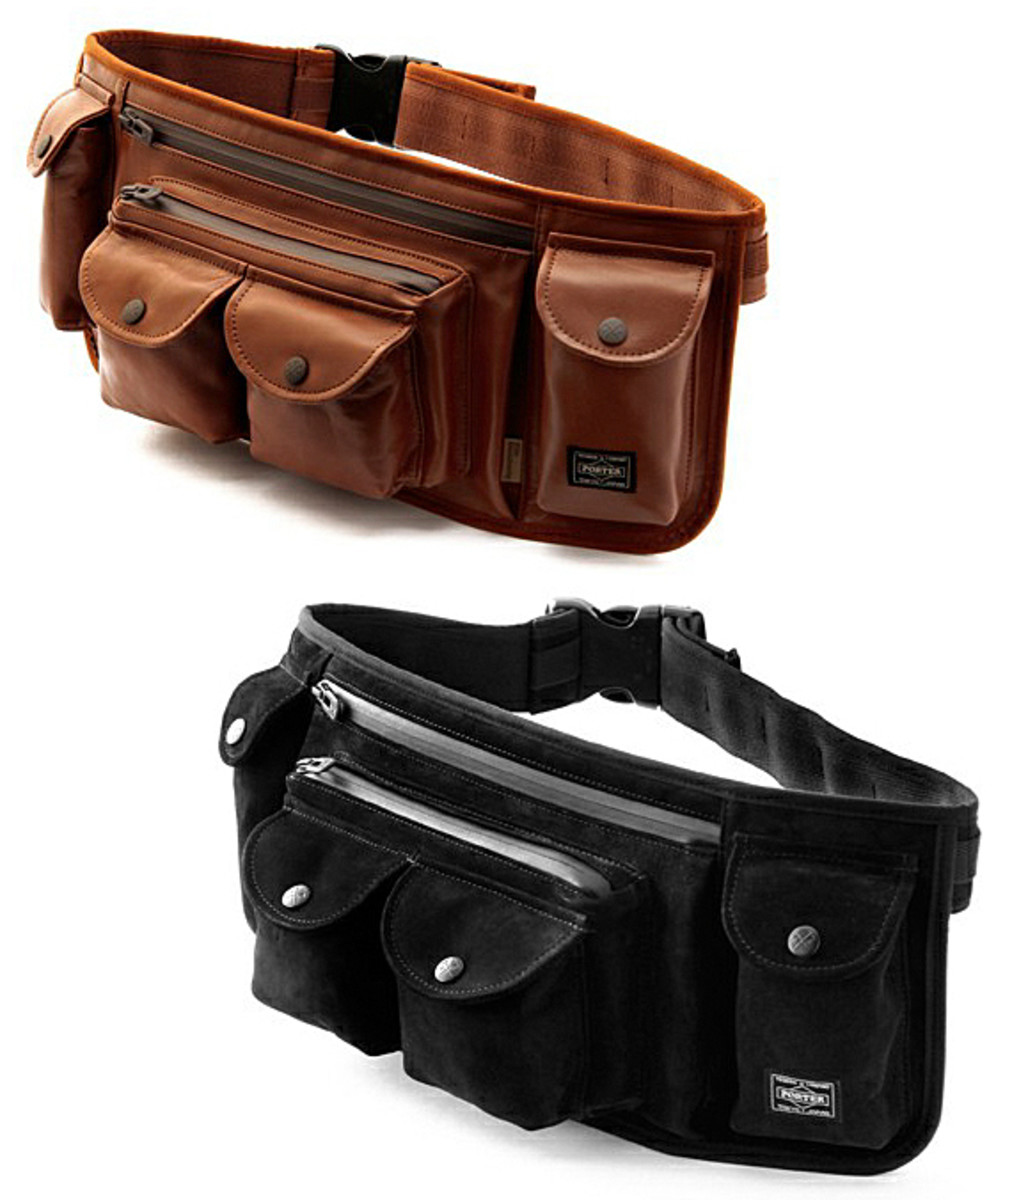 white-mountaineering-porter-yoshida-leather-waist-bag-02